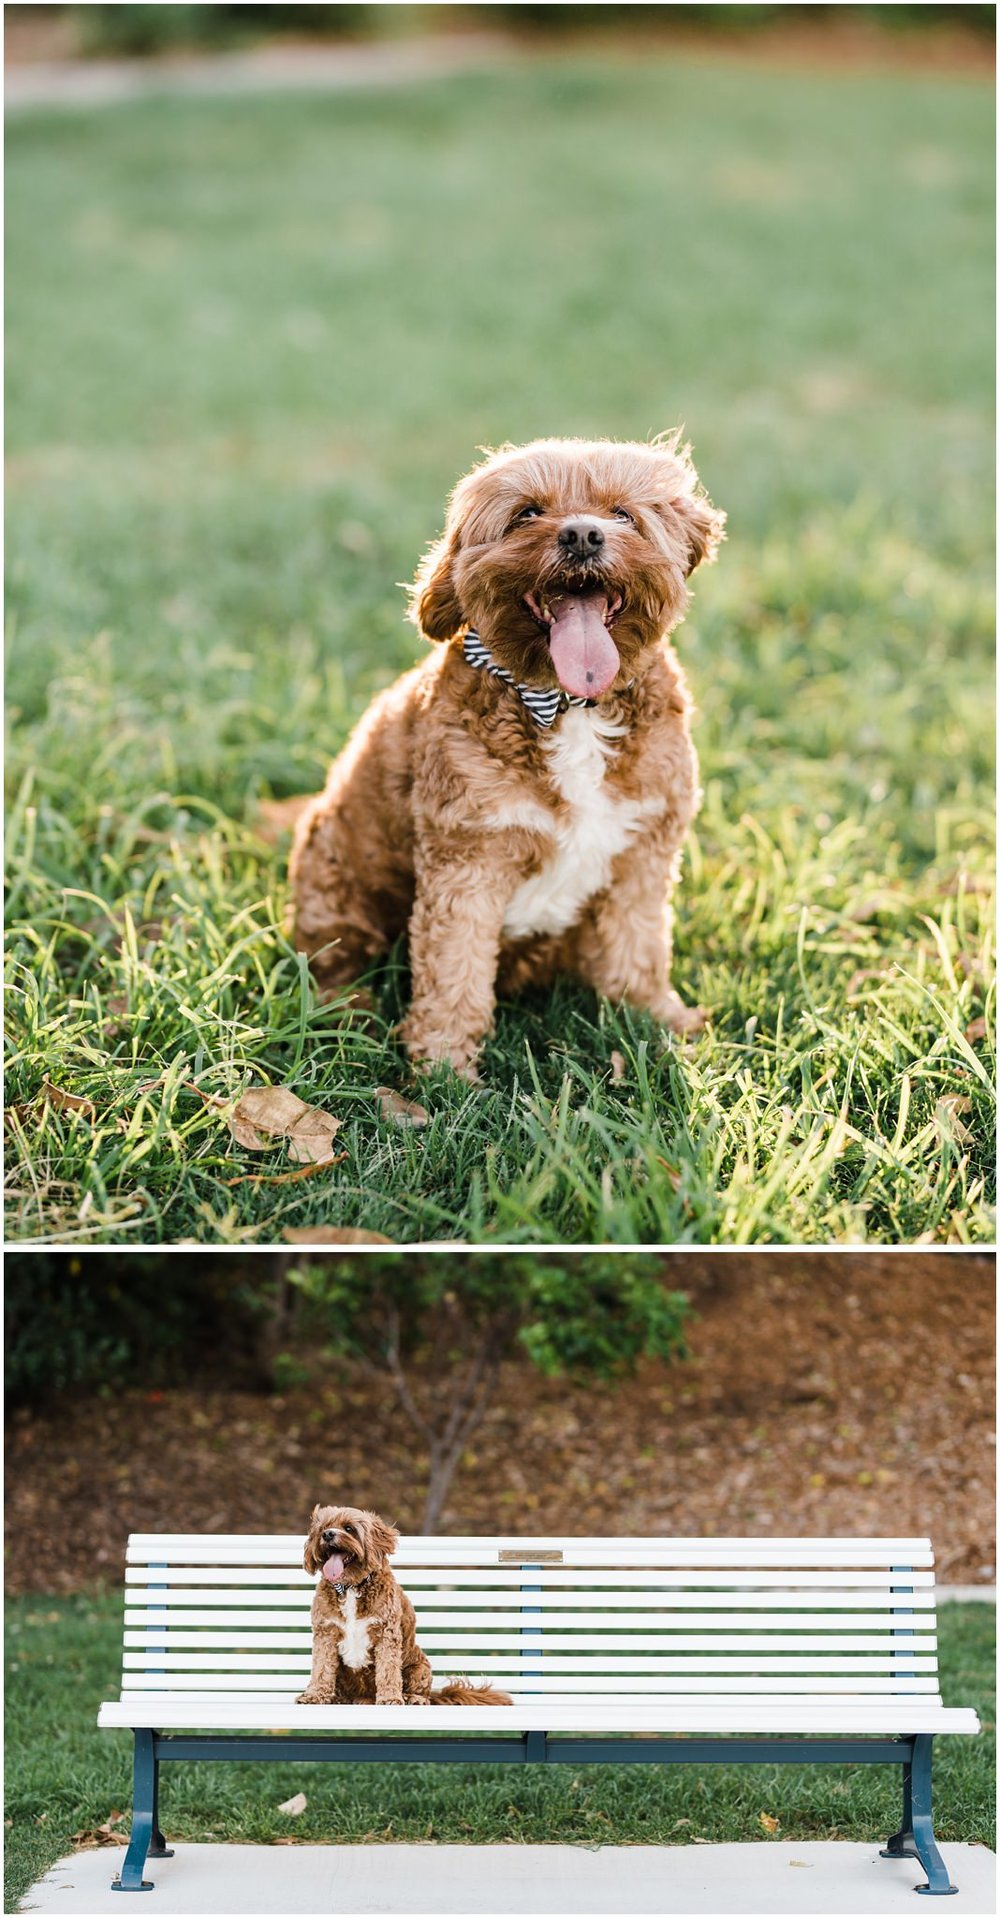 brisbane-brighton-sandgate-engagement-pet-photography-cute-doggo24.jpg